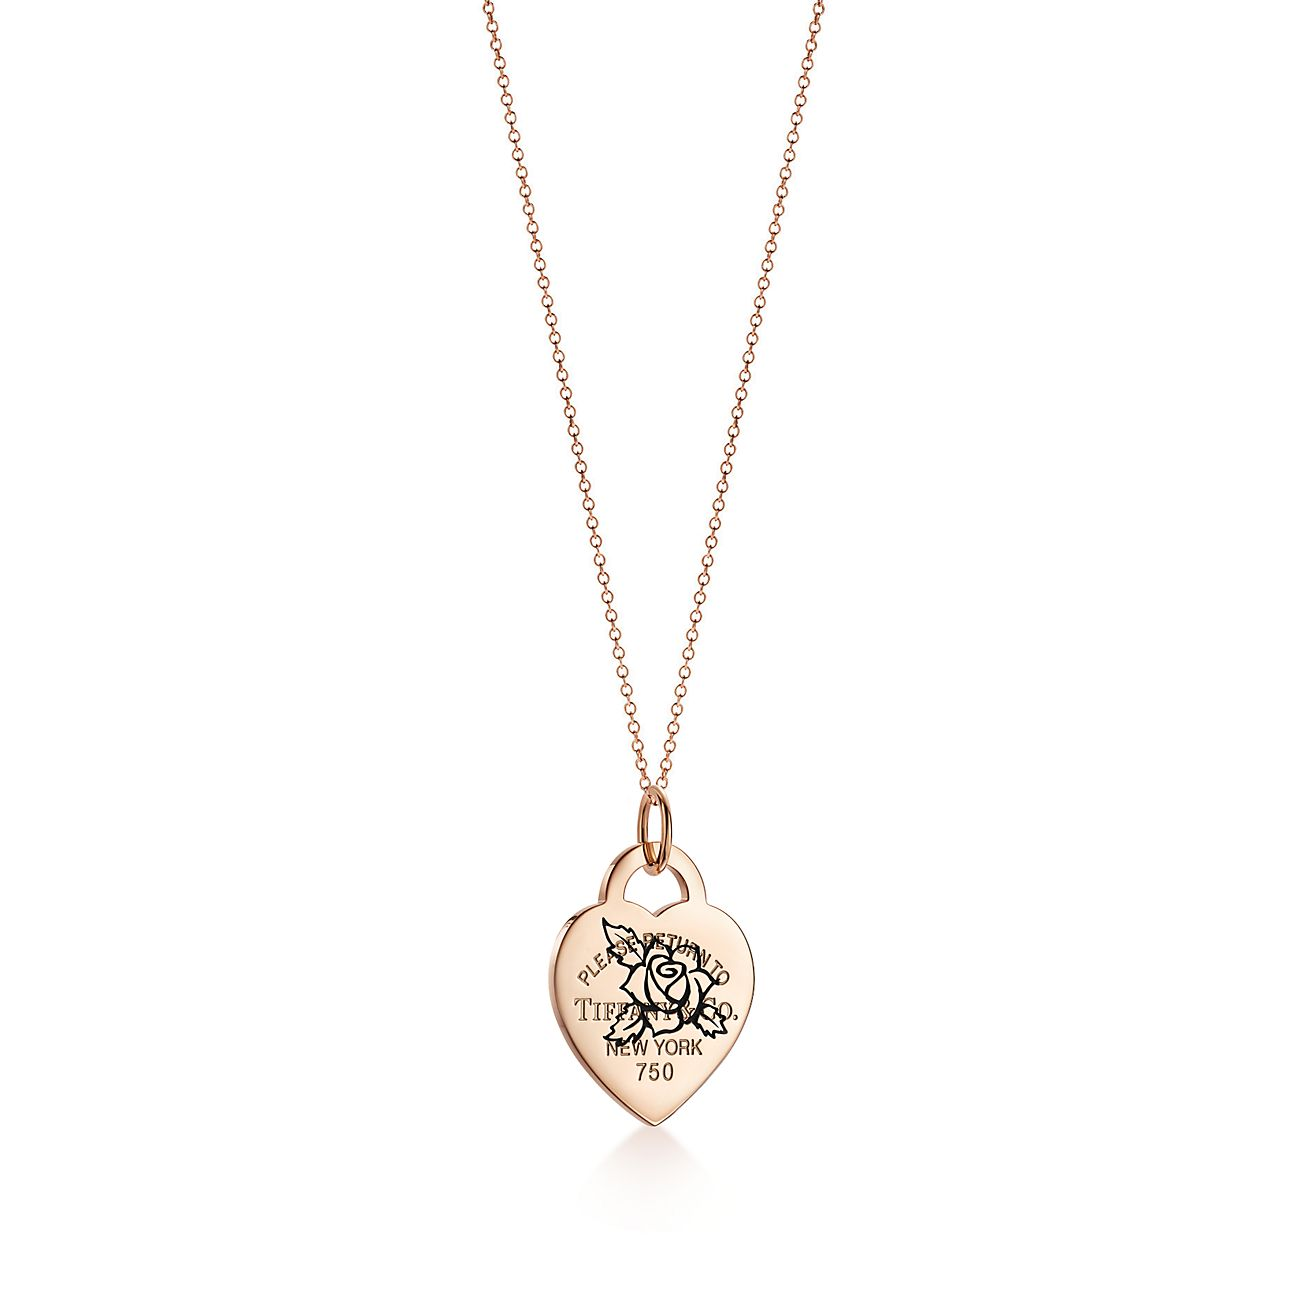 Return to Tiffany Etched rose heart tag charm in 18k rose gold, large - Size Rose Tiffany & Co.